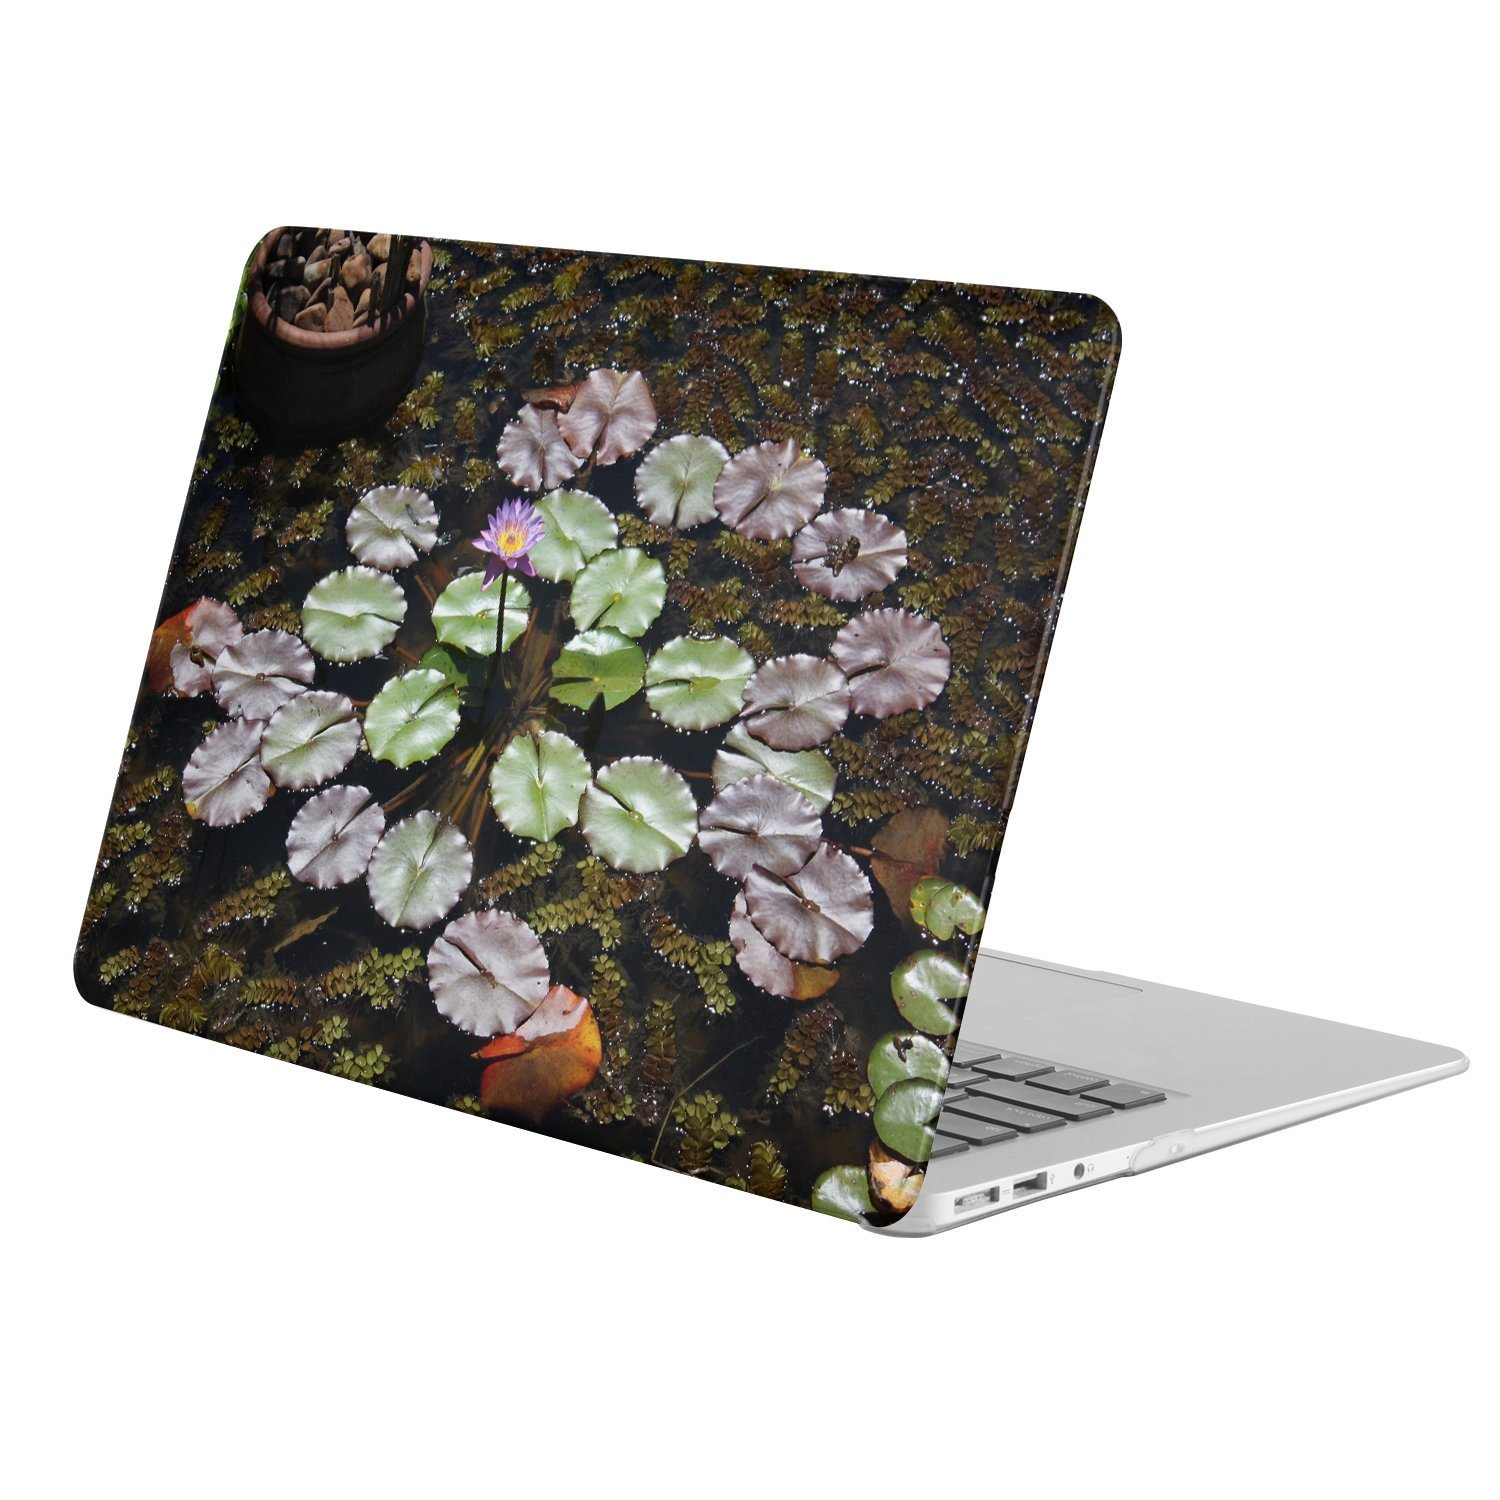 Cheap lily pad and flower find lily pad and flower deals on line at get quotations kingcase macbook 12 with retina display model a1534 release 2015 izmirmasajfo